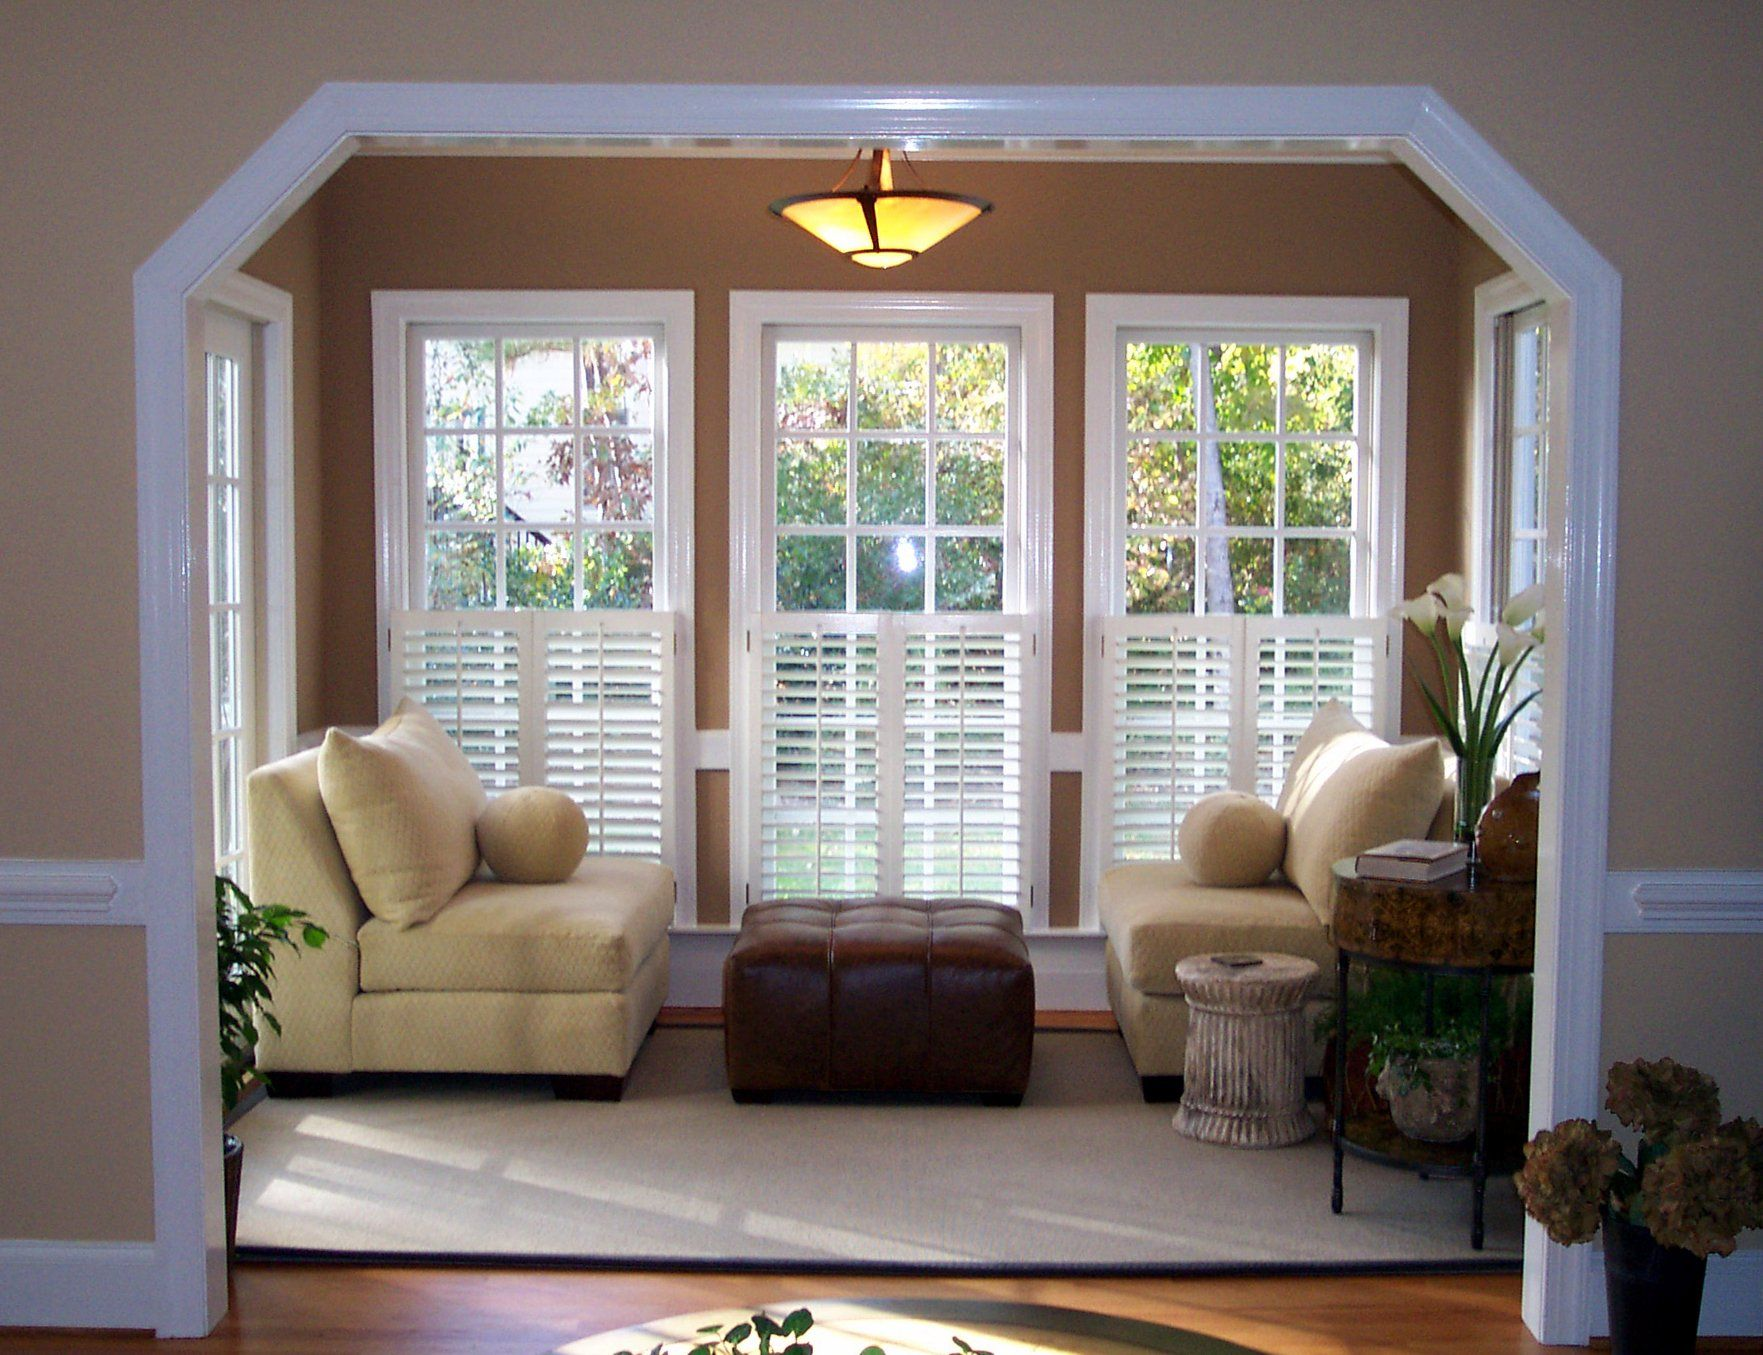 Window ideas for a sunroom  images of windows in sunroom  glass windows with white wooden